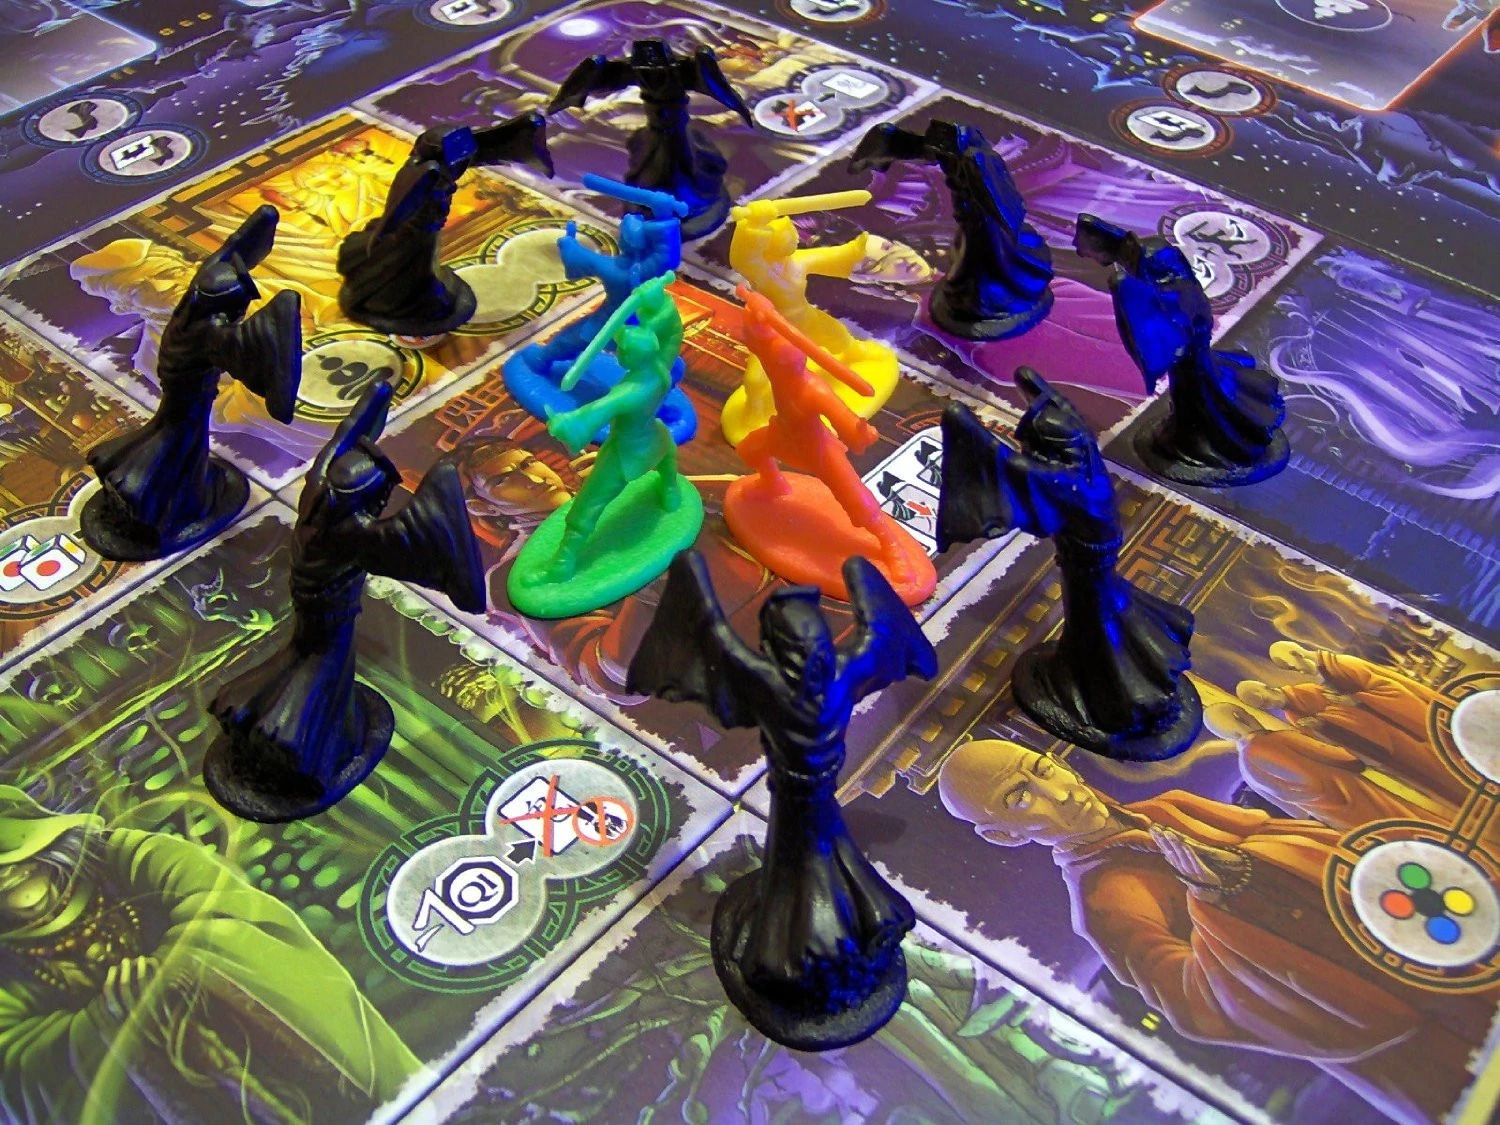 Details about Ghost Stories Board Game